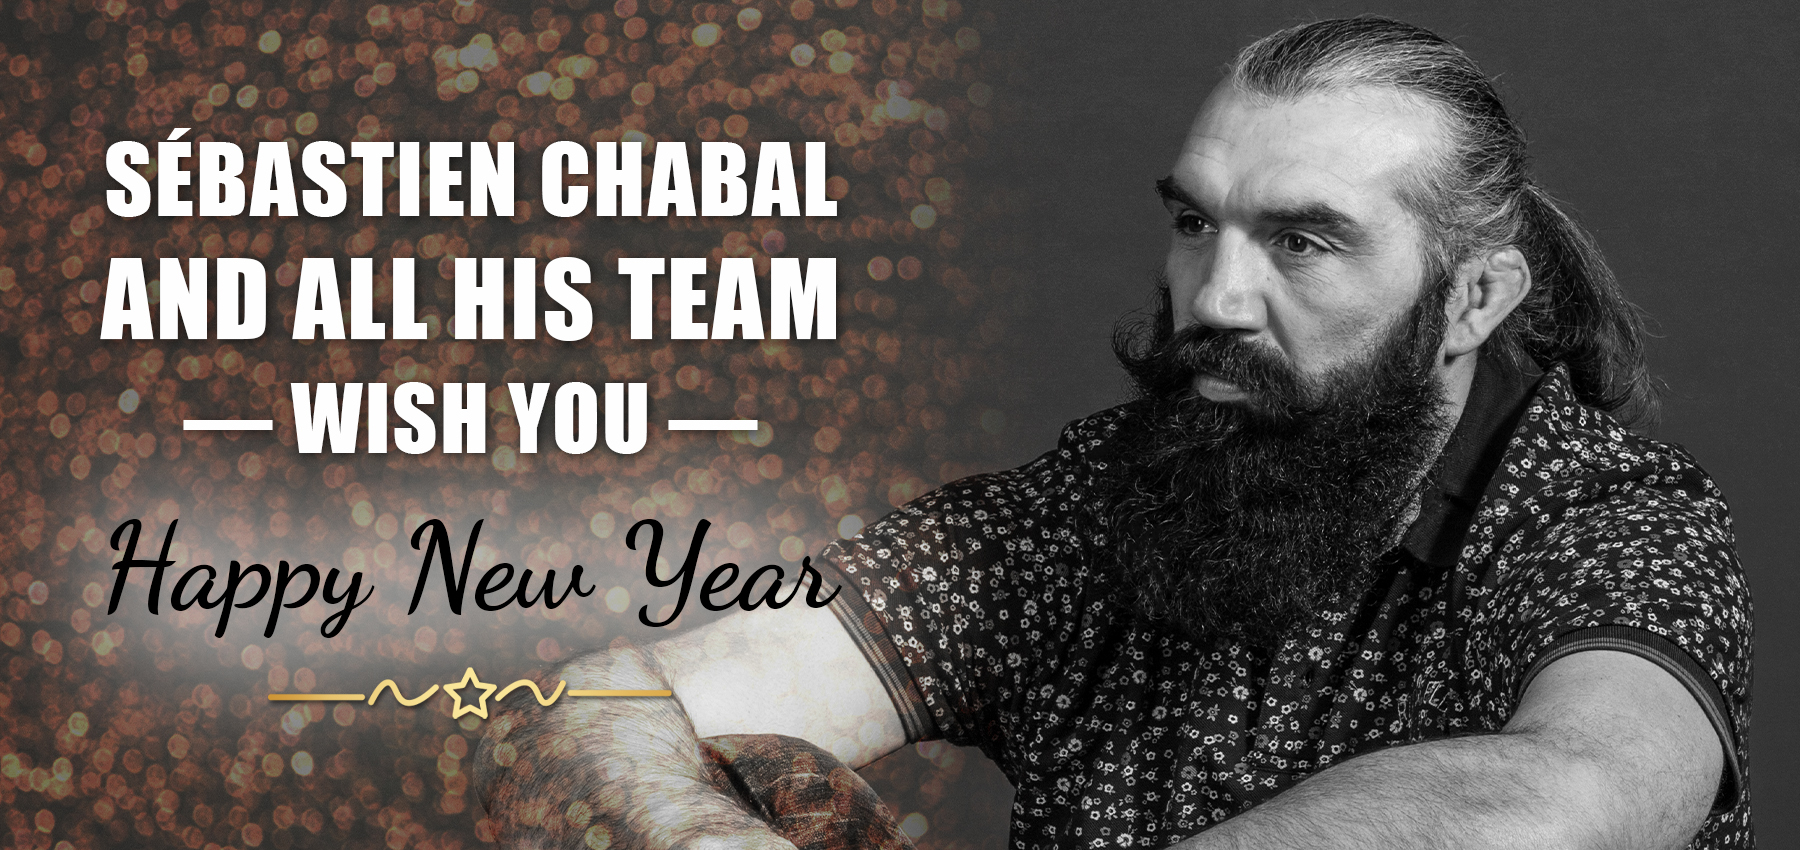 Sébastien Chabal and all this team wish you Happy New Years